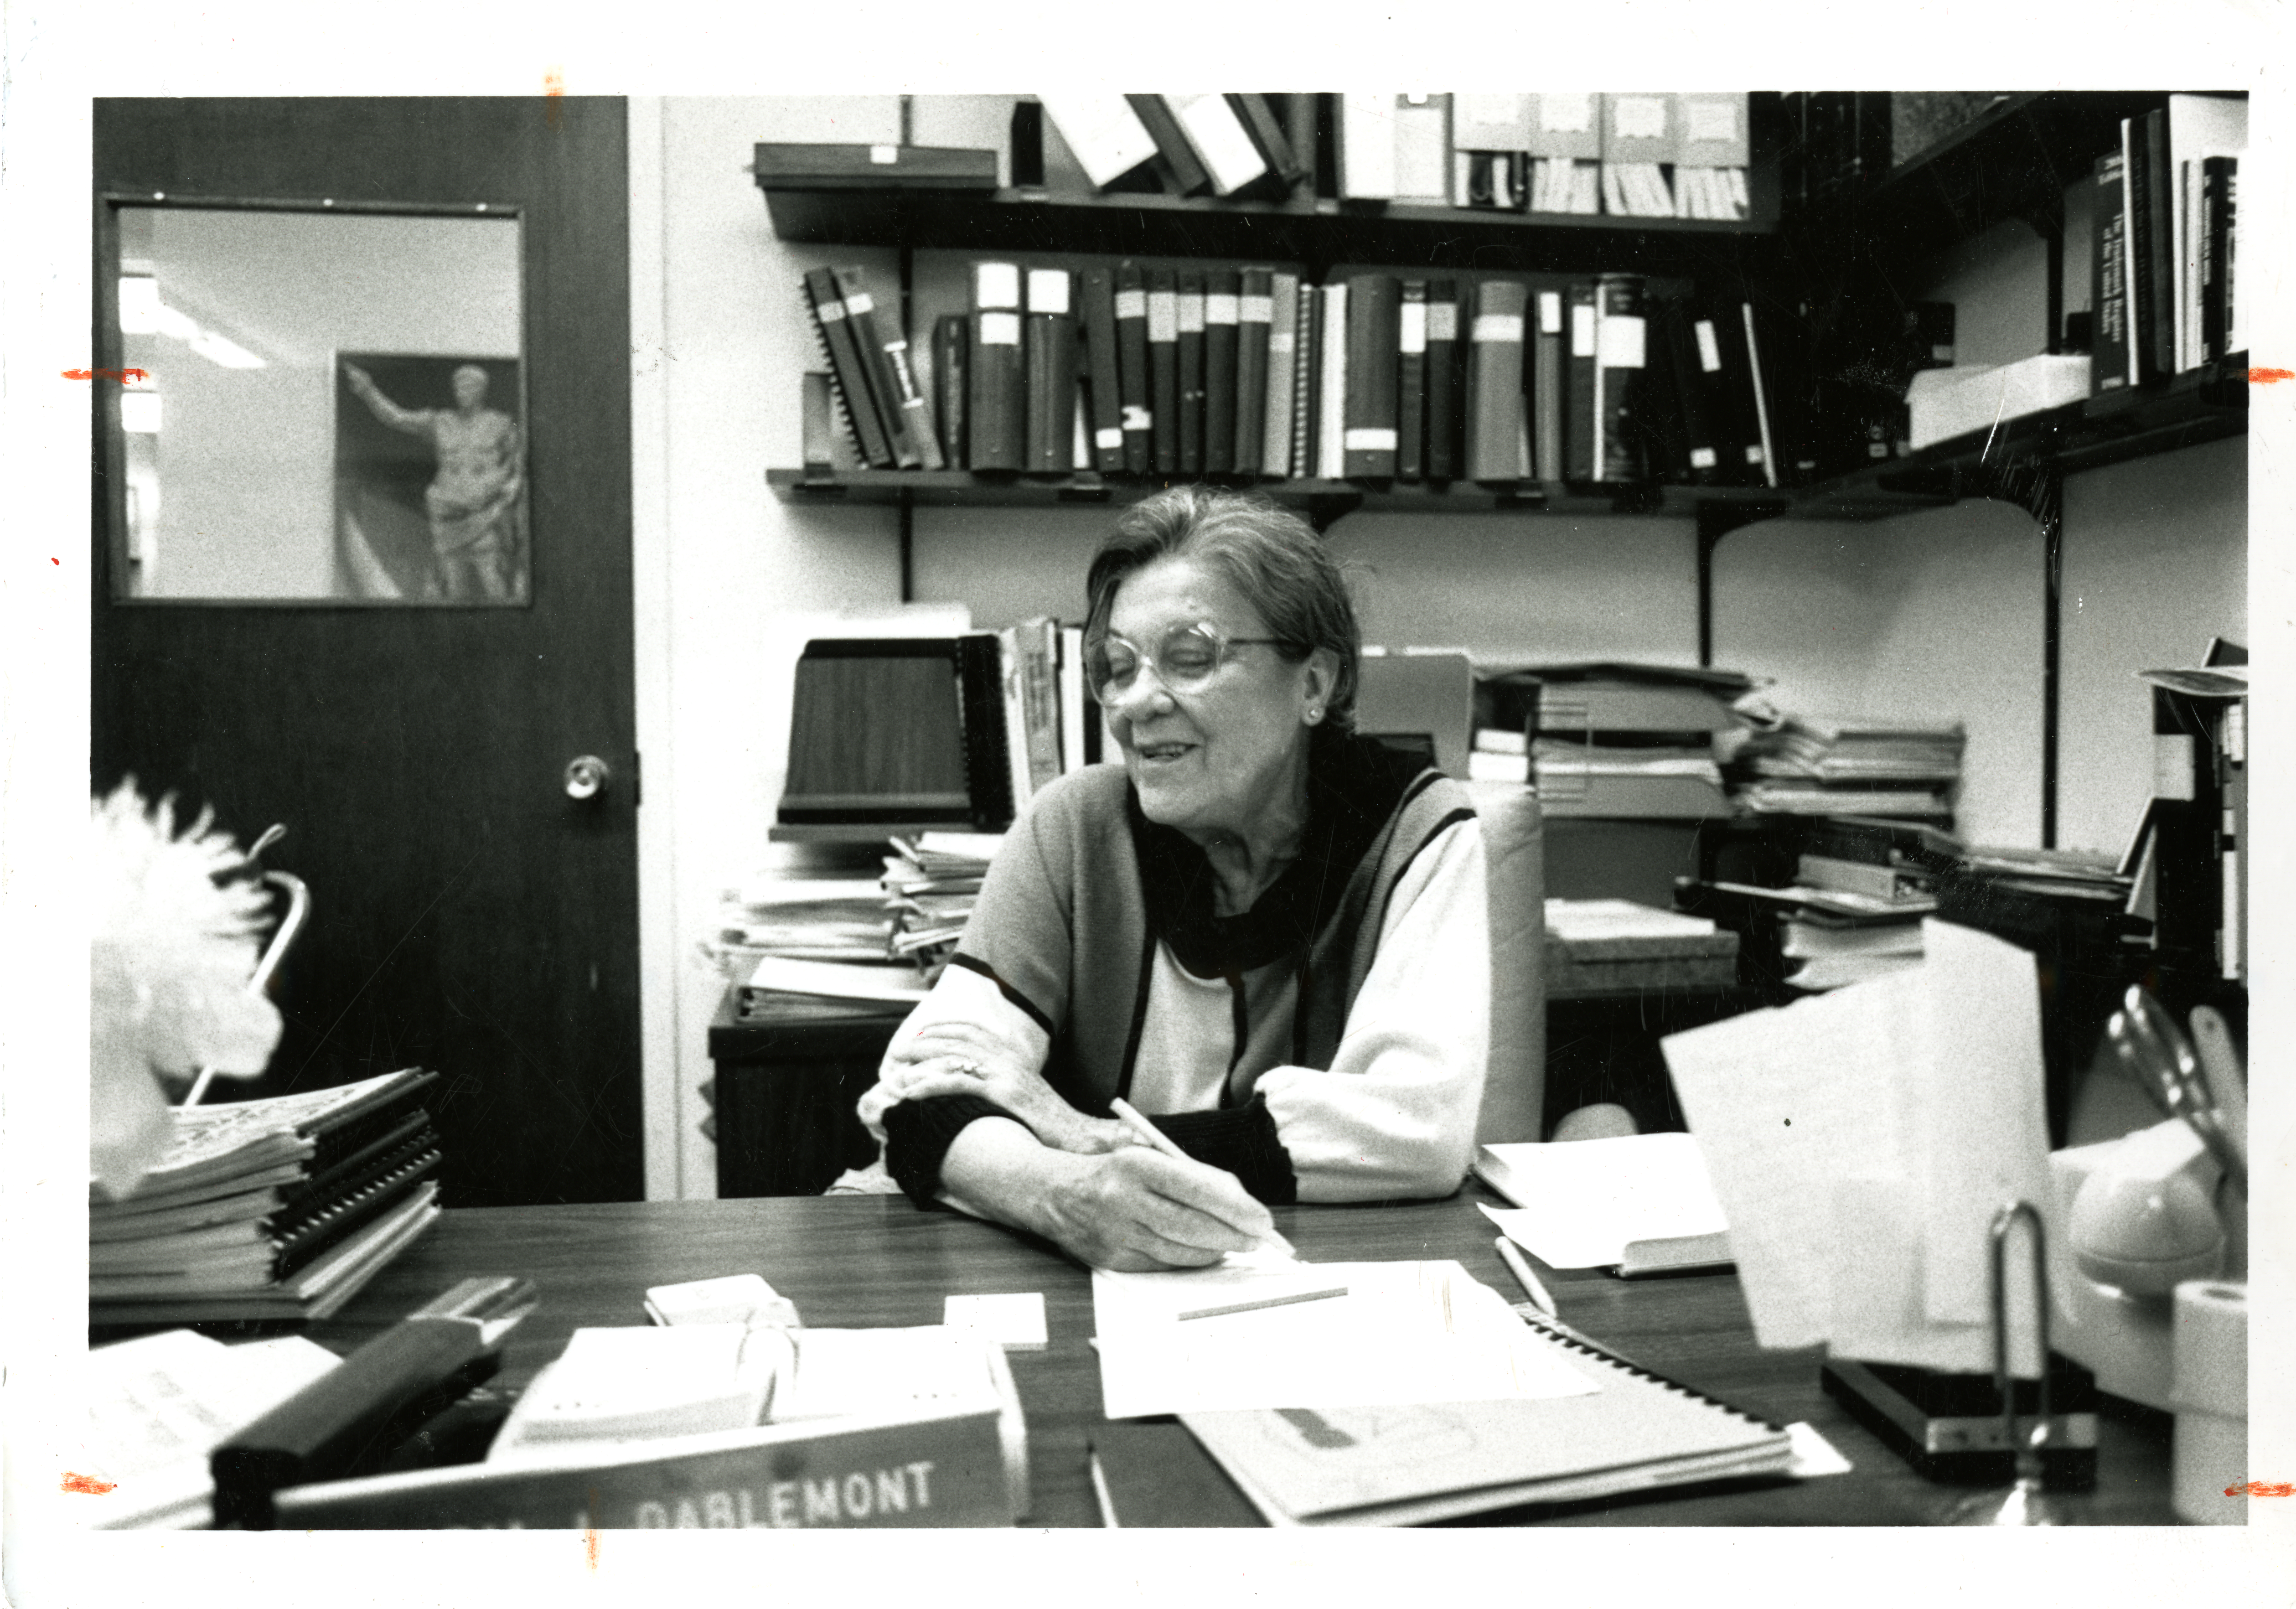 Maria Dablemont at the International Library, Archives & Museum of Optometry, 1988